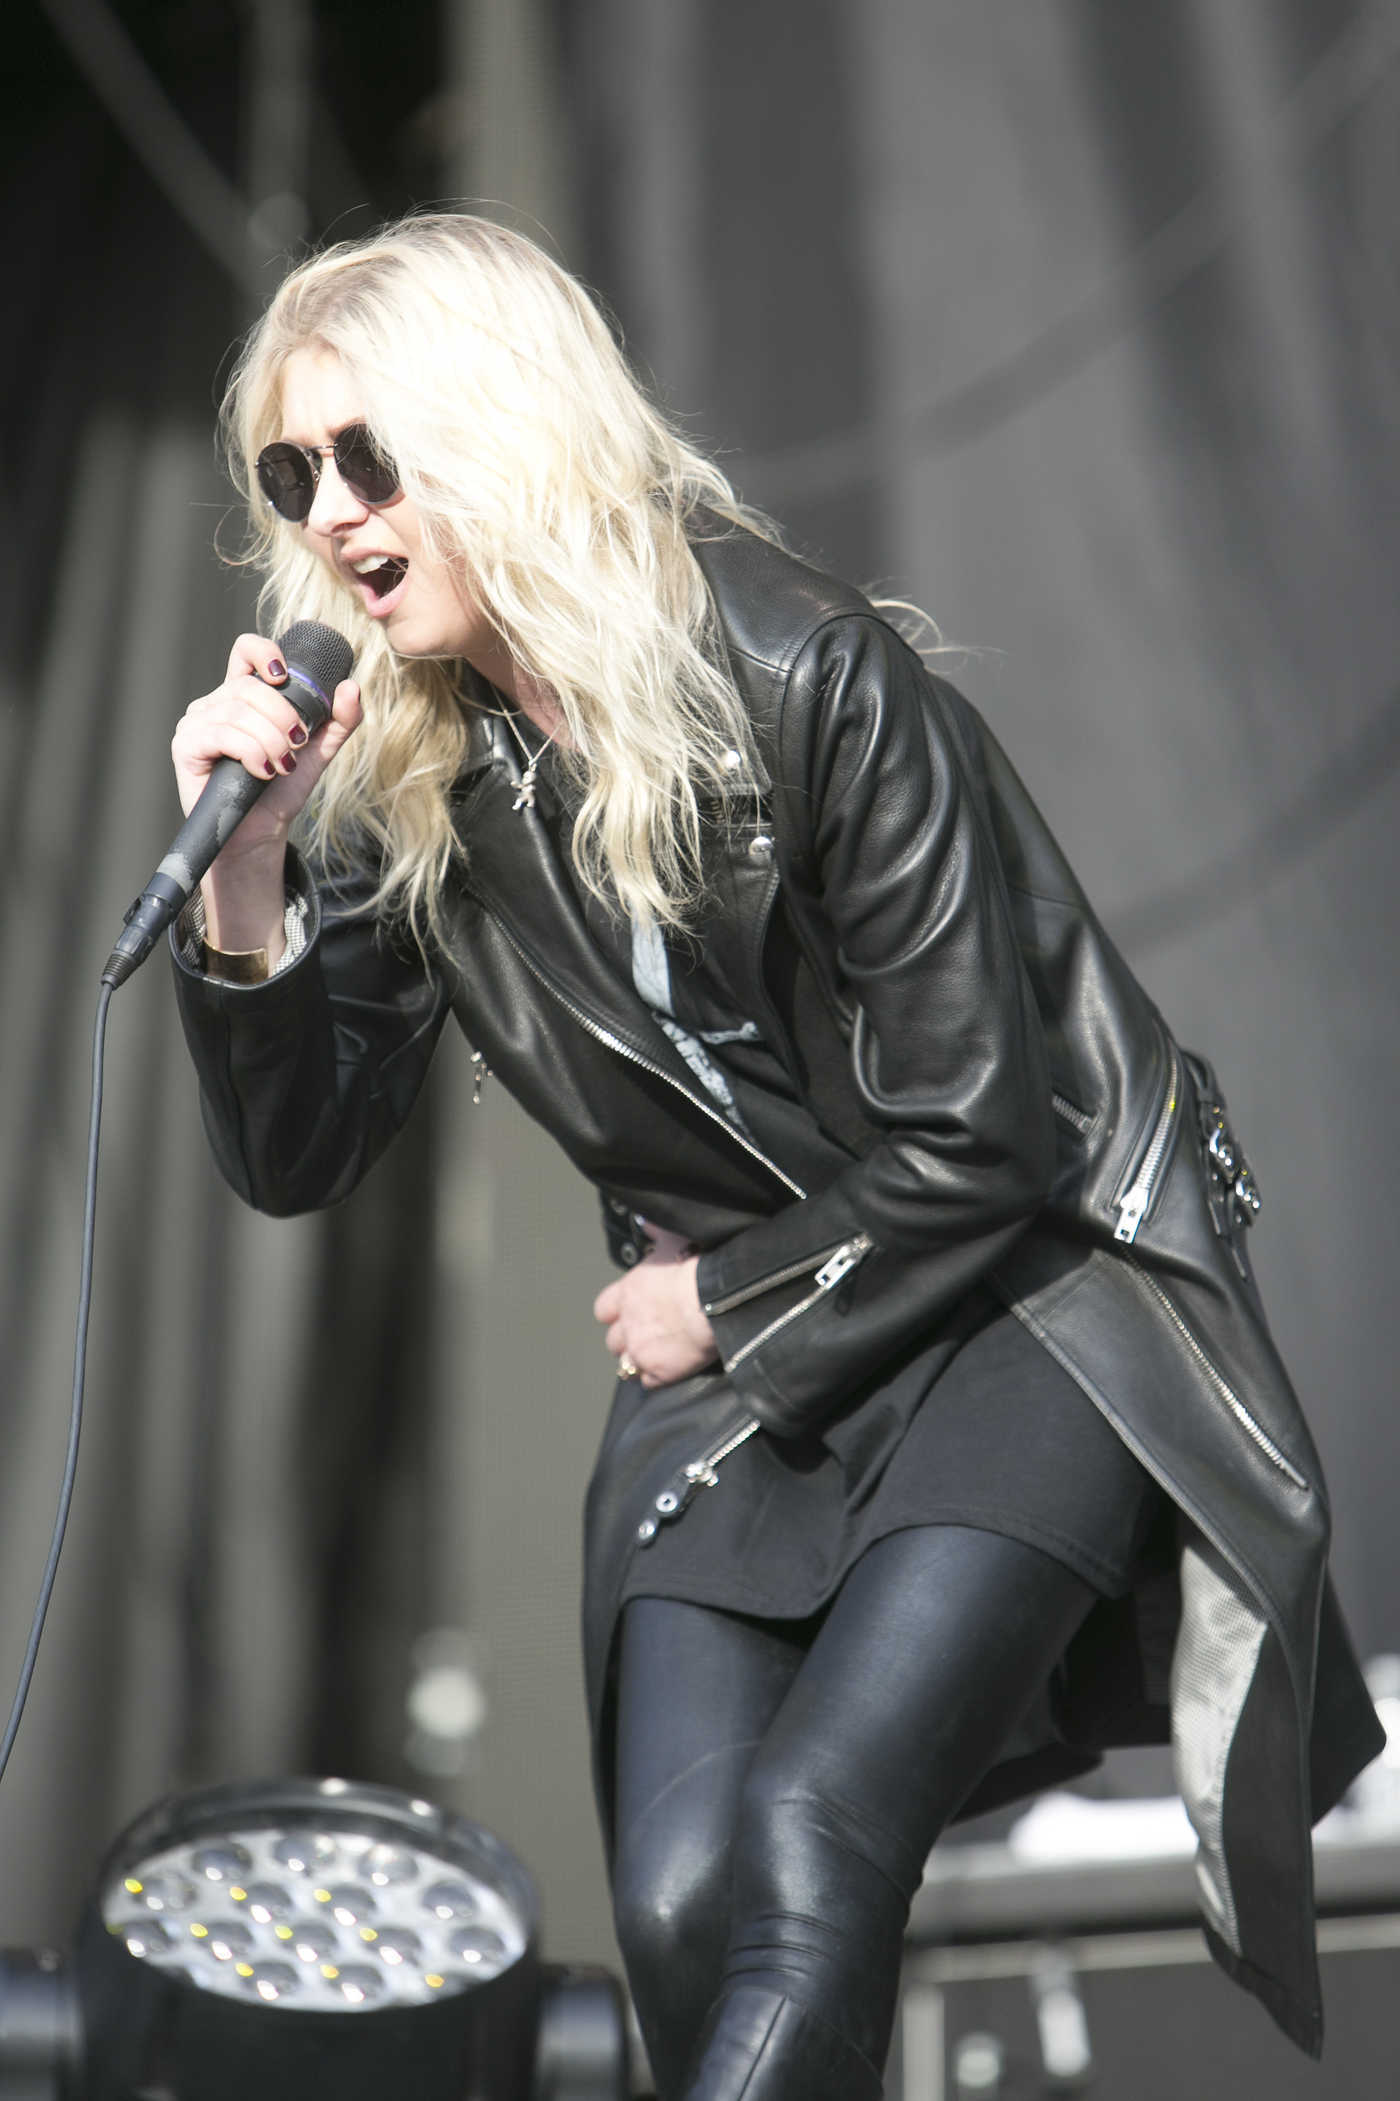 Taylor Momsen Performs at the Monster Energy Aftershock Festival in Sacramento 10/22/2016